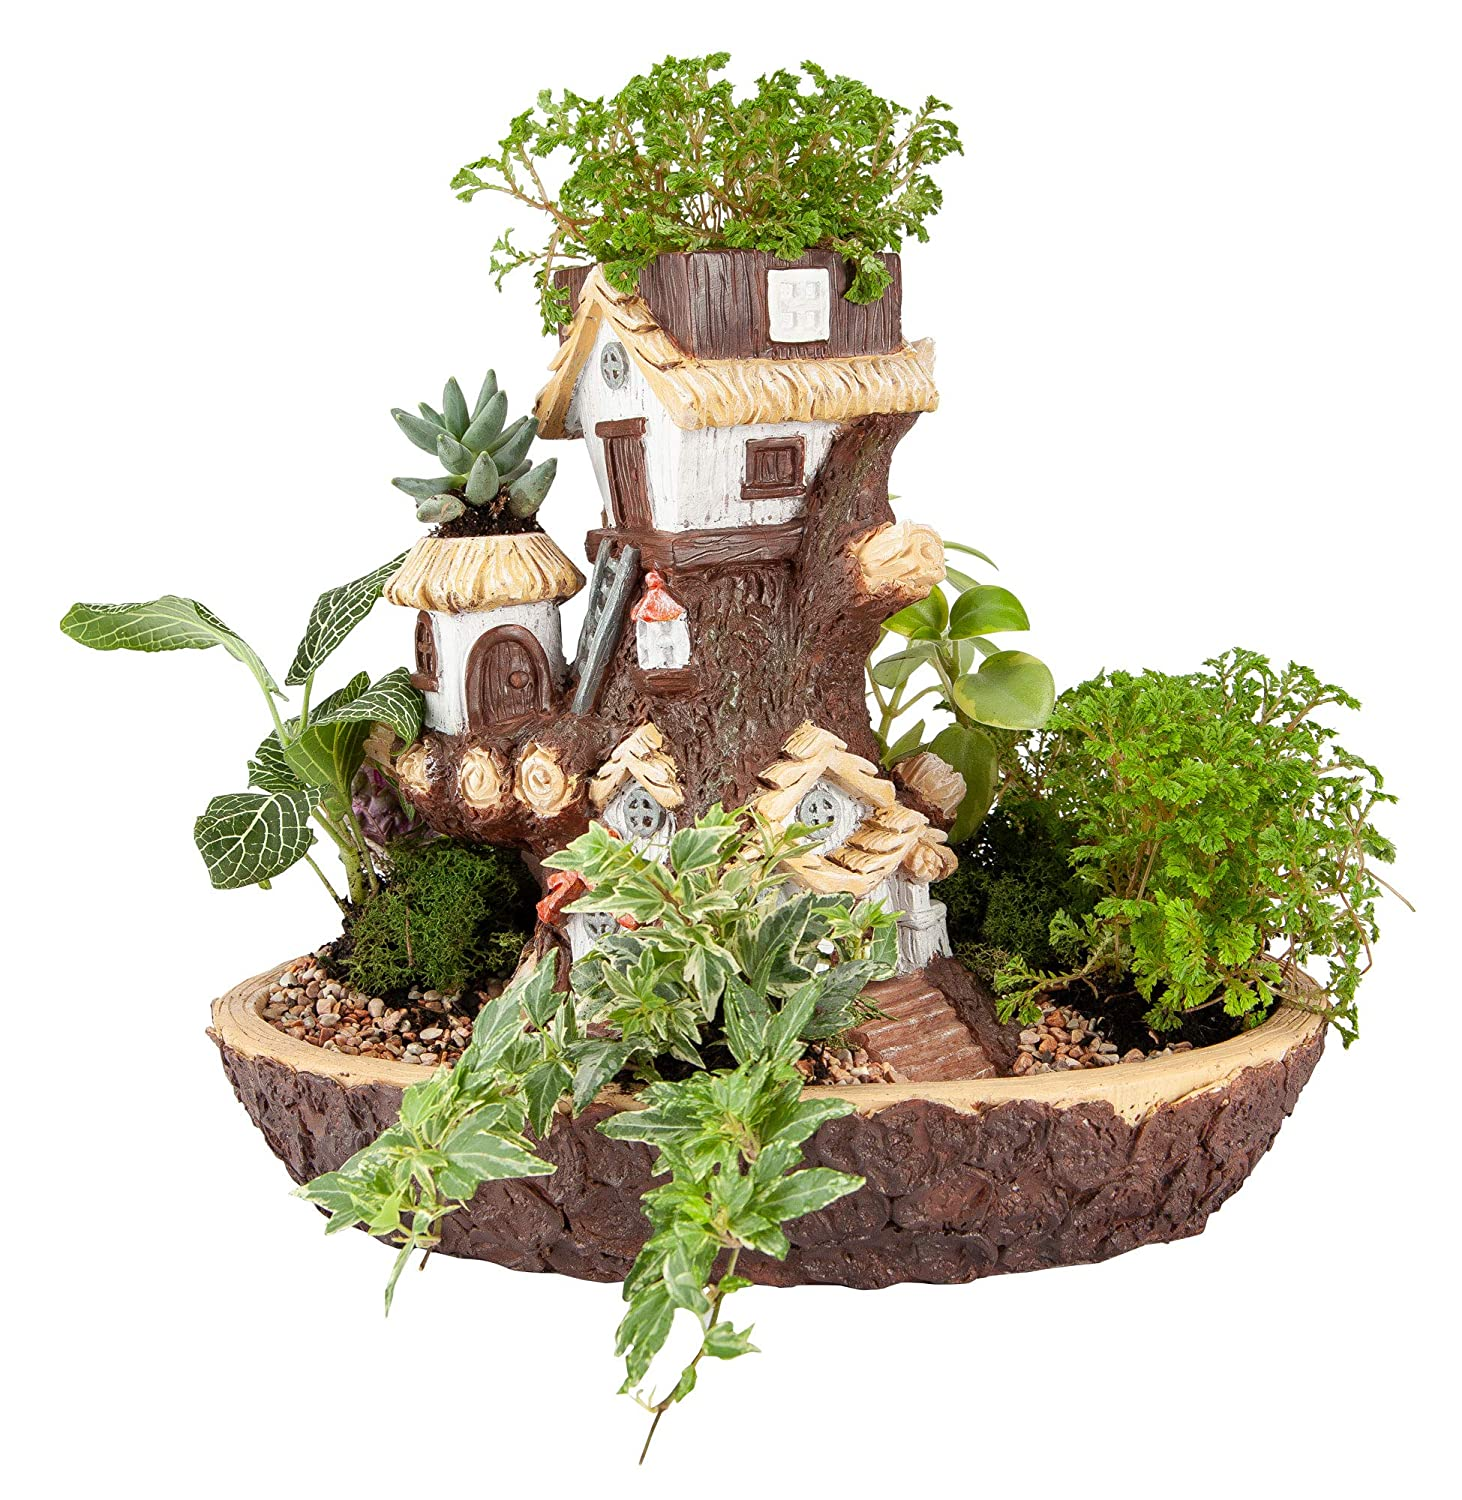 The Paragon Fairy Garden Planter House, Resin Fairy Forest Mulit Layer Decroative Flower Pot for Succulents, Cactus or Small Flower